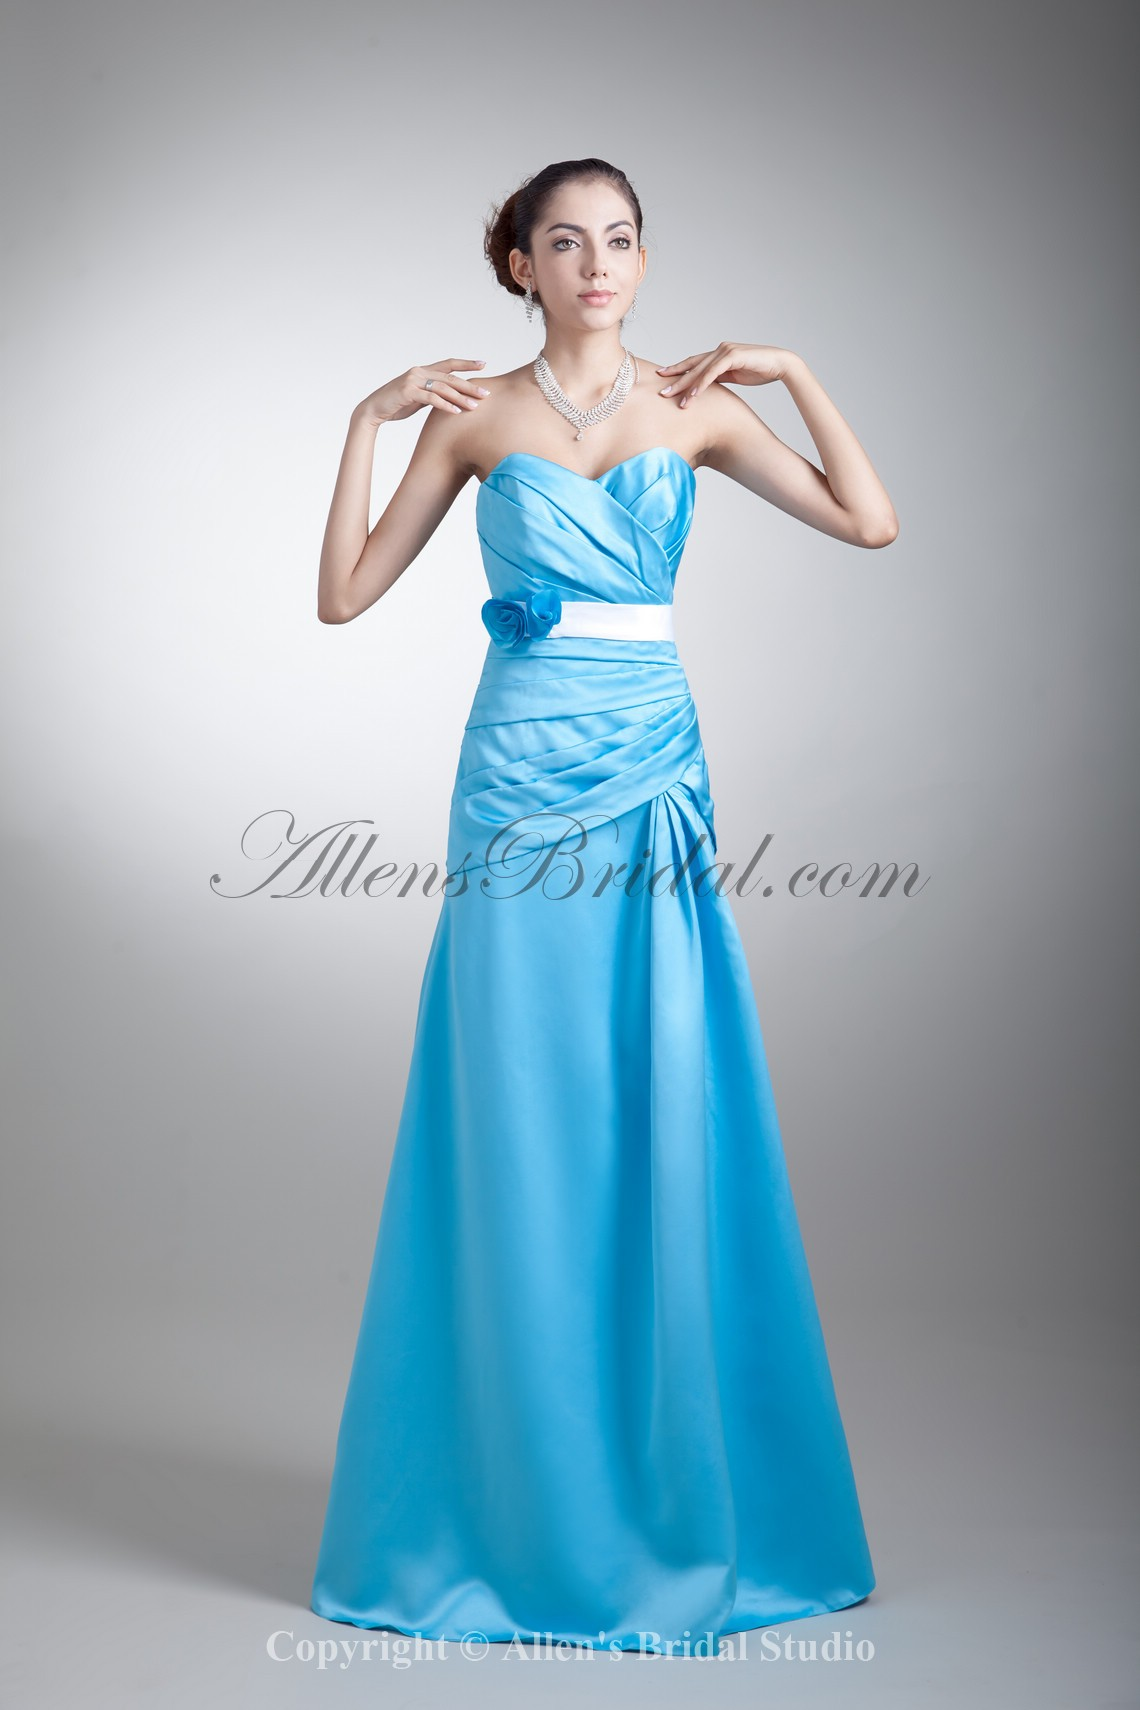 /757-6062/satin-sweetheart-neckline-floor-length-a-line-flowers-prom-dress.jpg